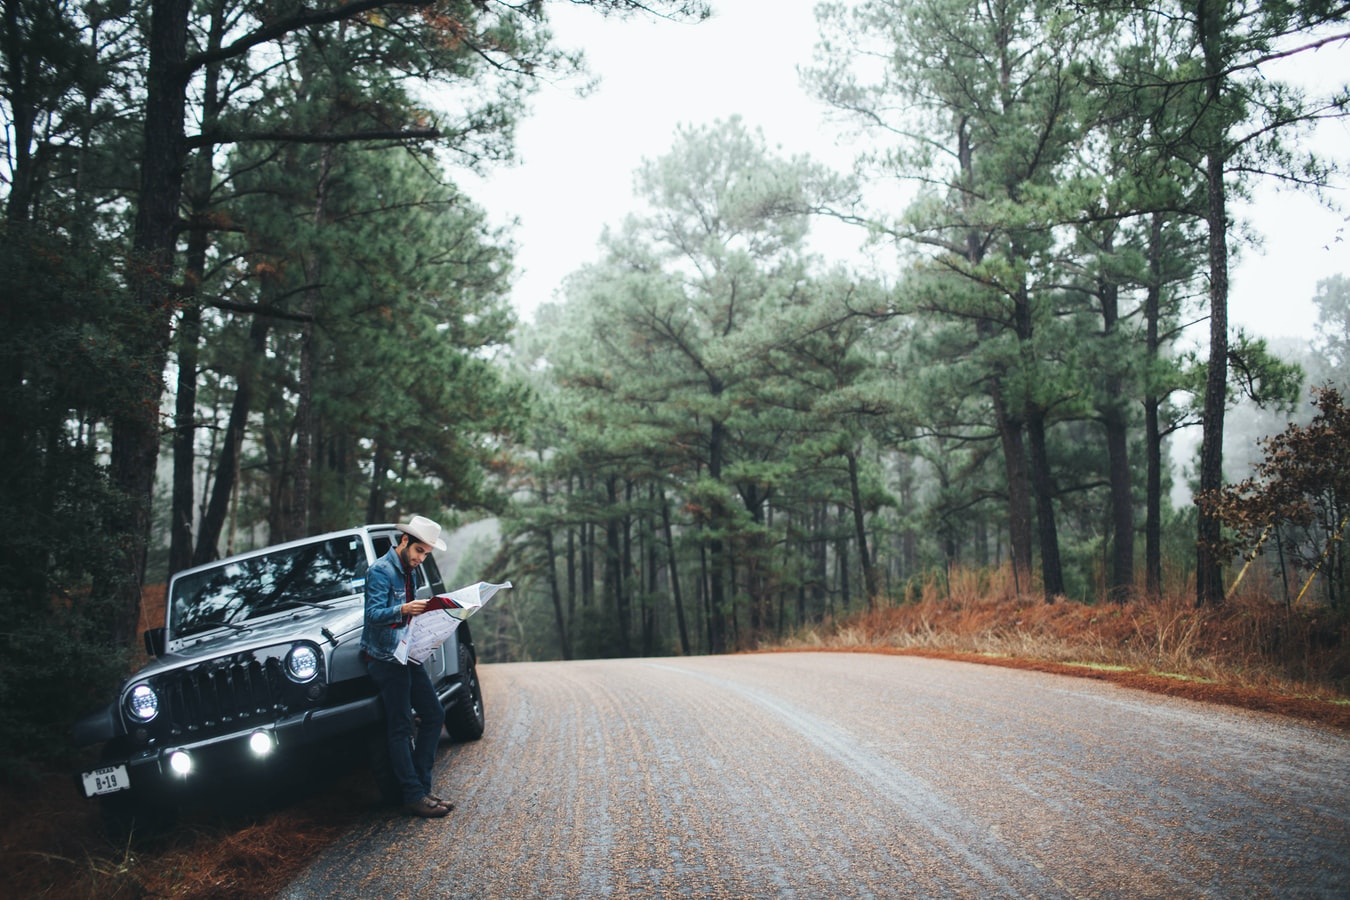 a road trip in europe, a road trip through the forest in a jeep